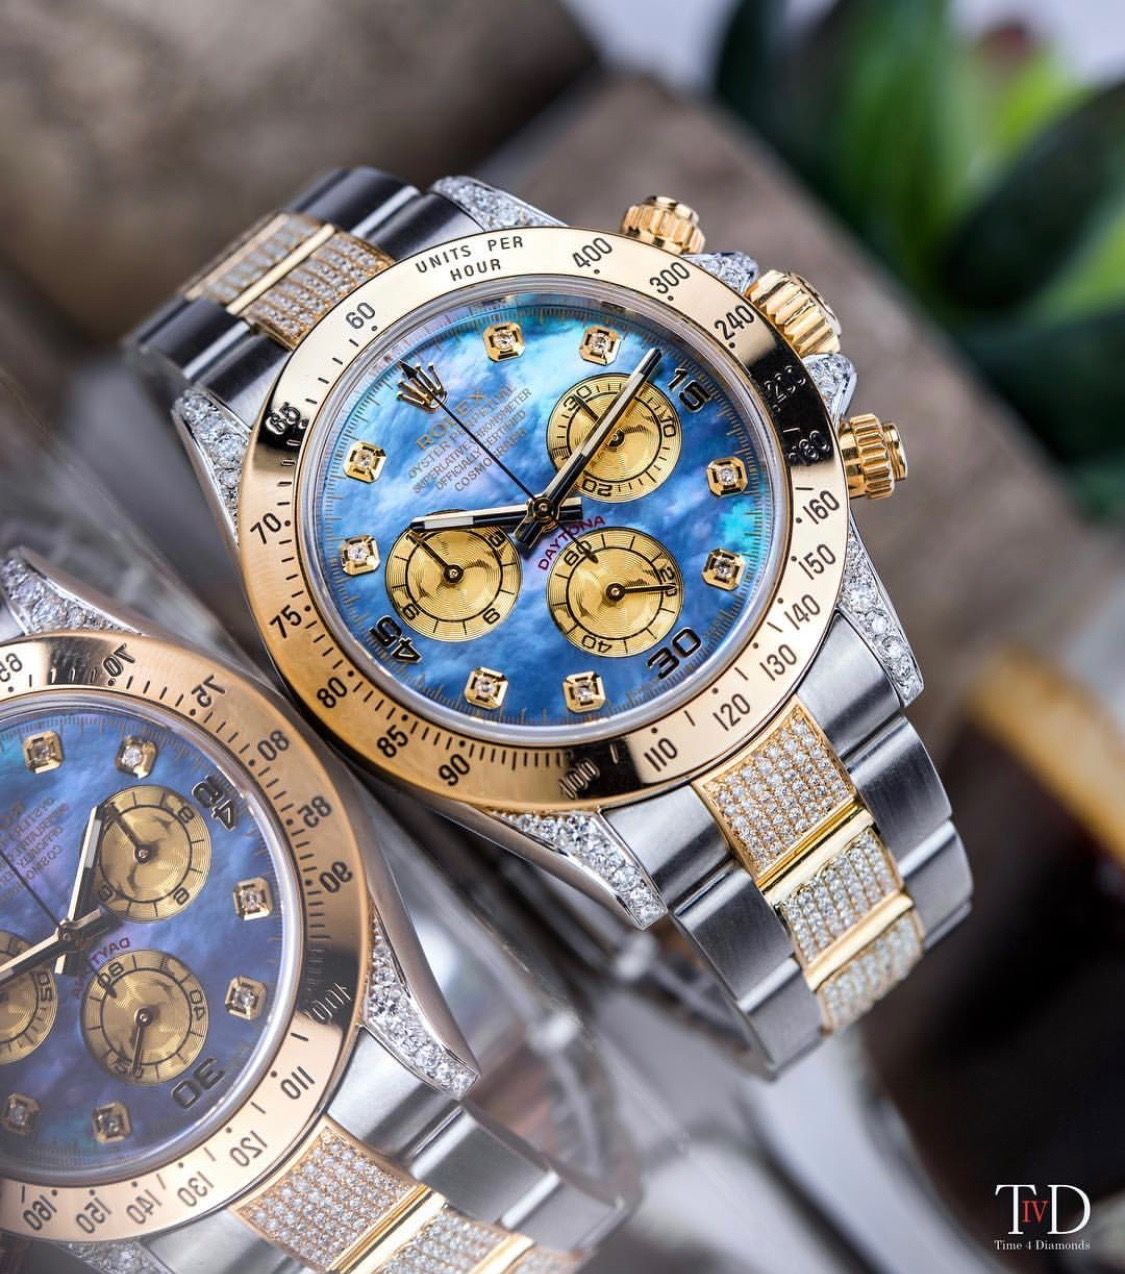 Pin by ℛᎽᎯℕℕ8 on ℛᎾℒℰX ᏇᎯᏆℂℋℰЅ Rolex, Rolex watches for